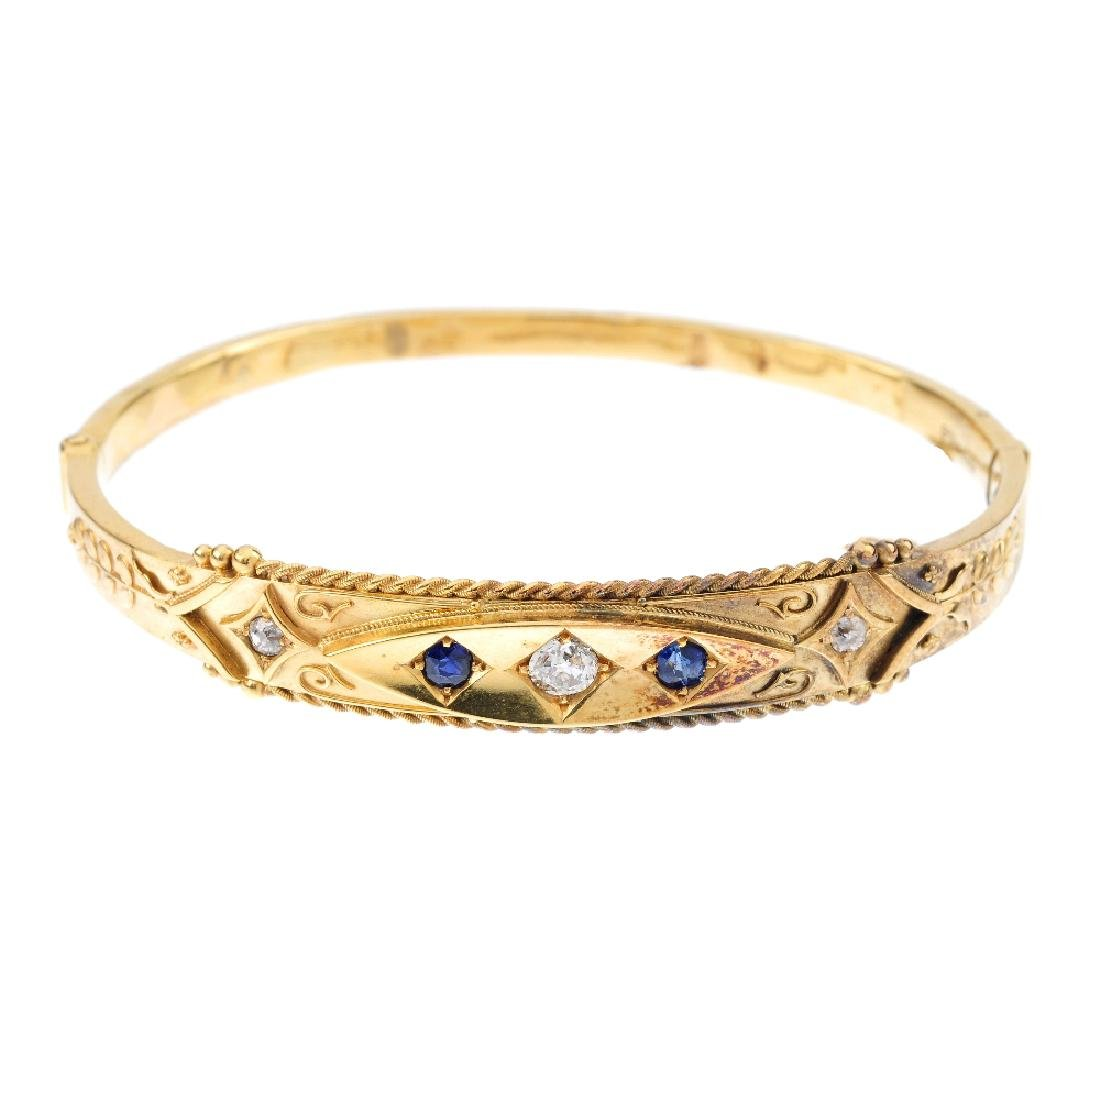 A late Victorian 15ct gold diamond and sapphire hinged